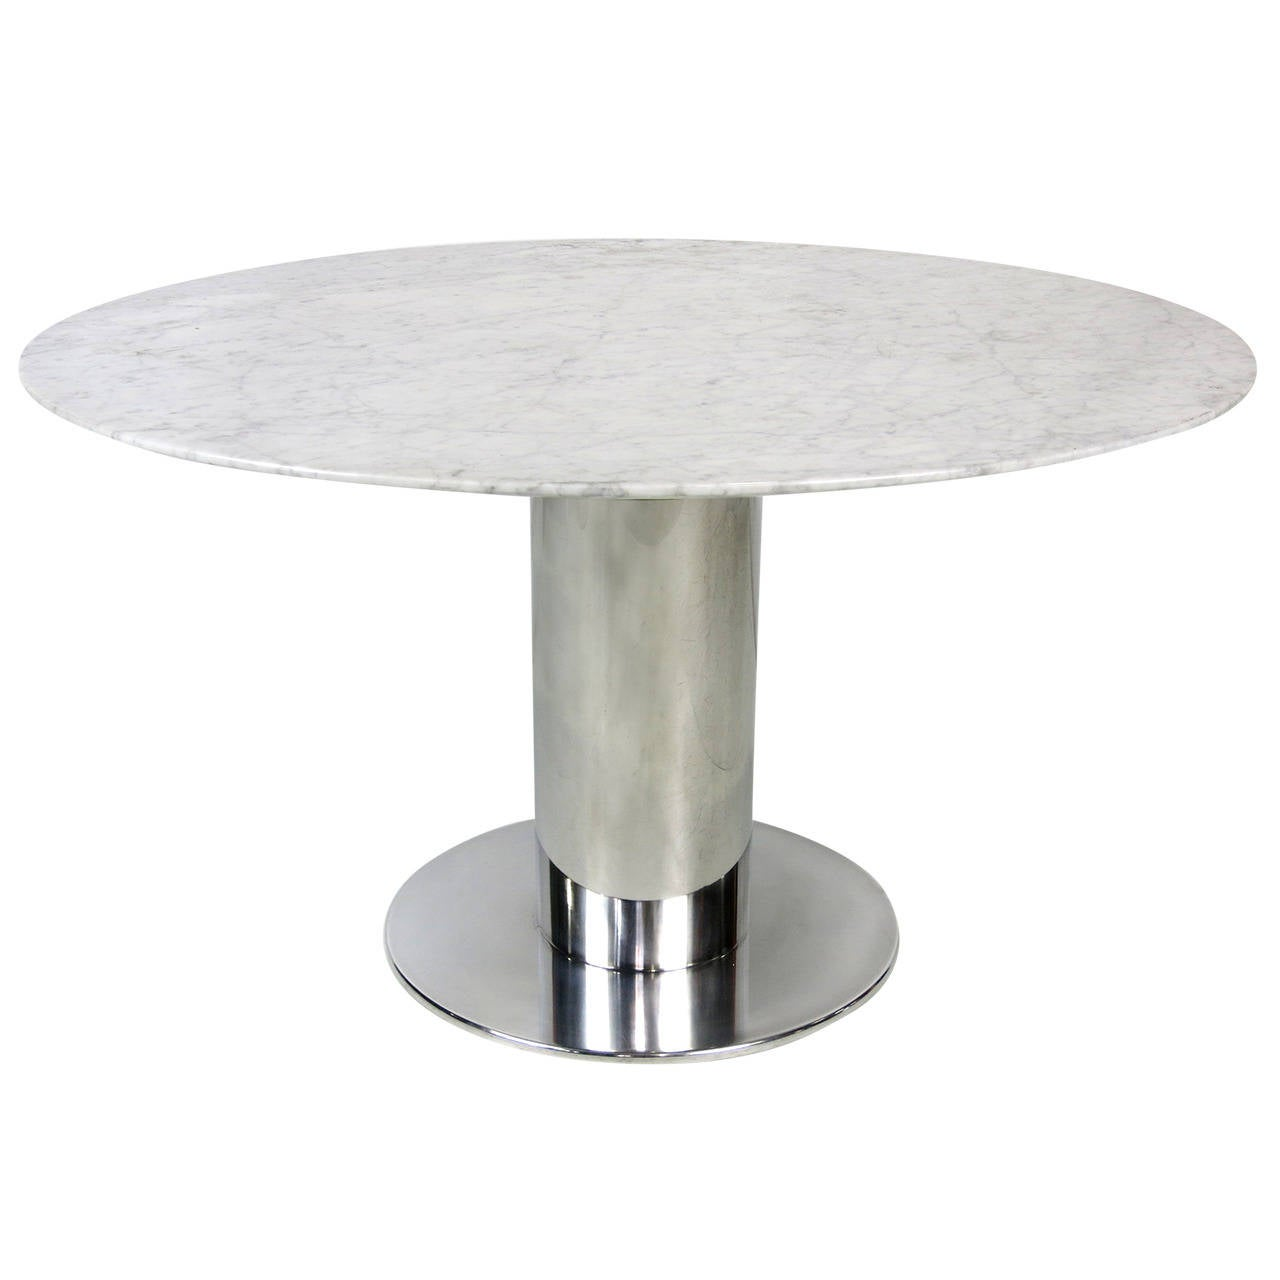 Polished stainless steel dining table base for sale at 1stdibs for Dining table base